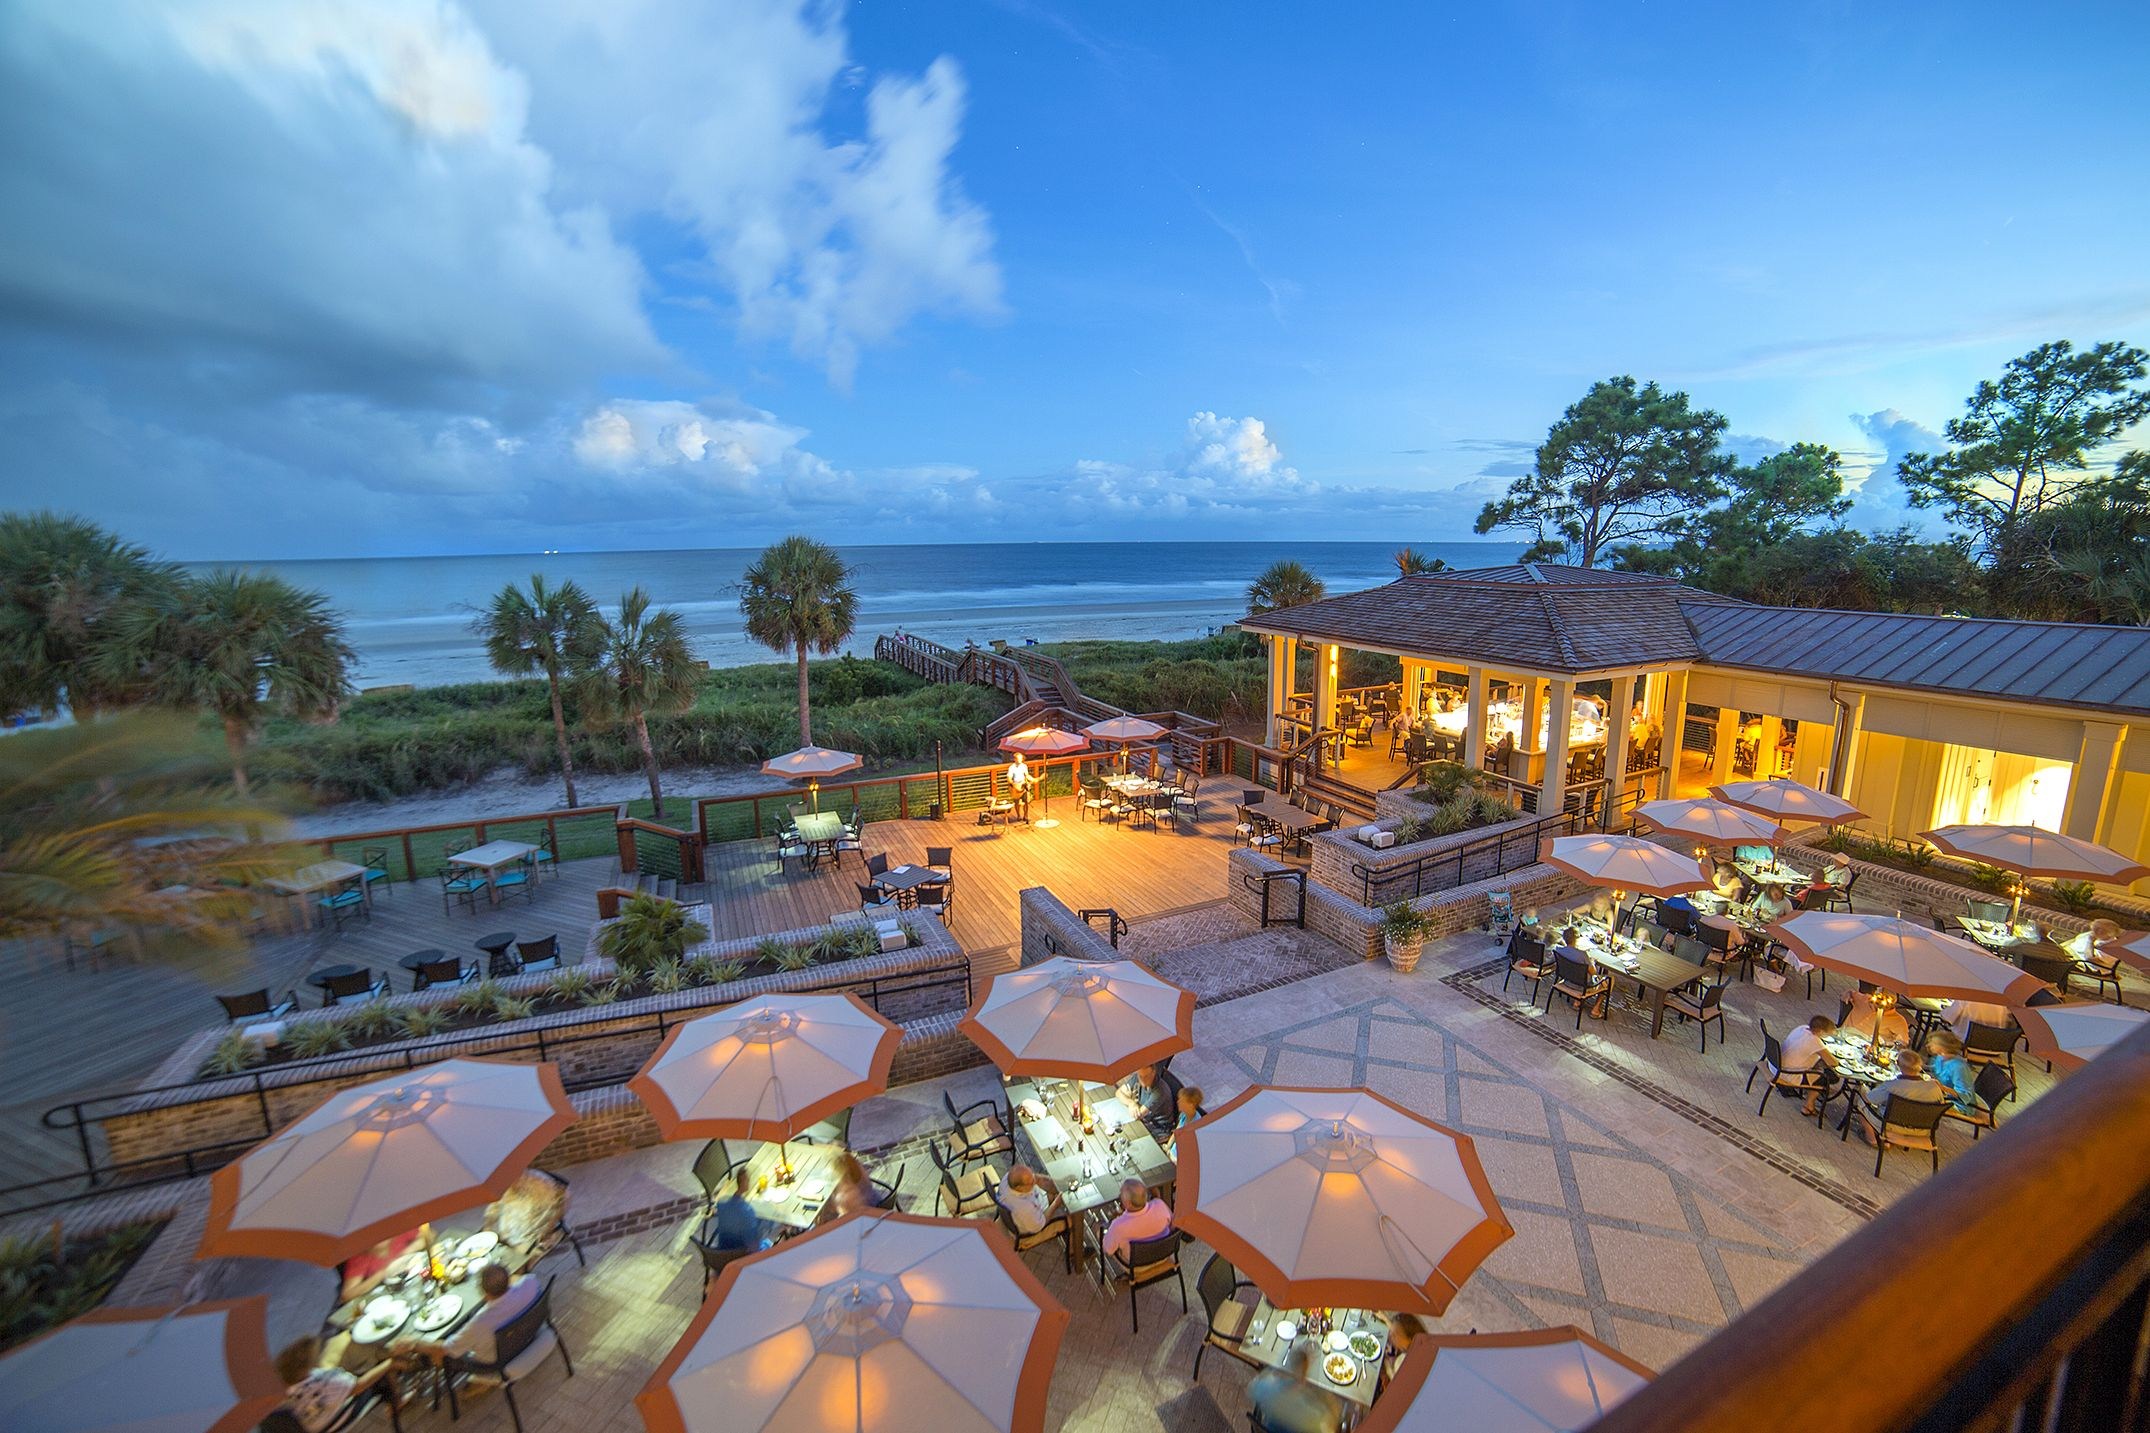 The Best Outdoor Dining Restaurants In America According To Opentable Coast Hilton Head Island South Carolina